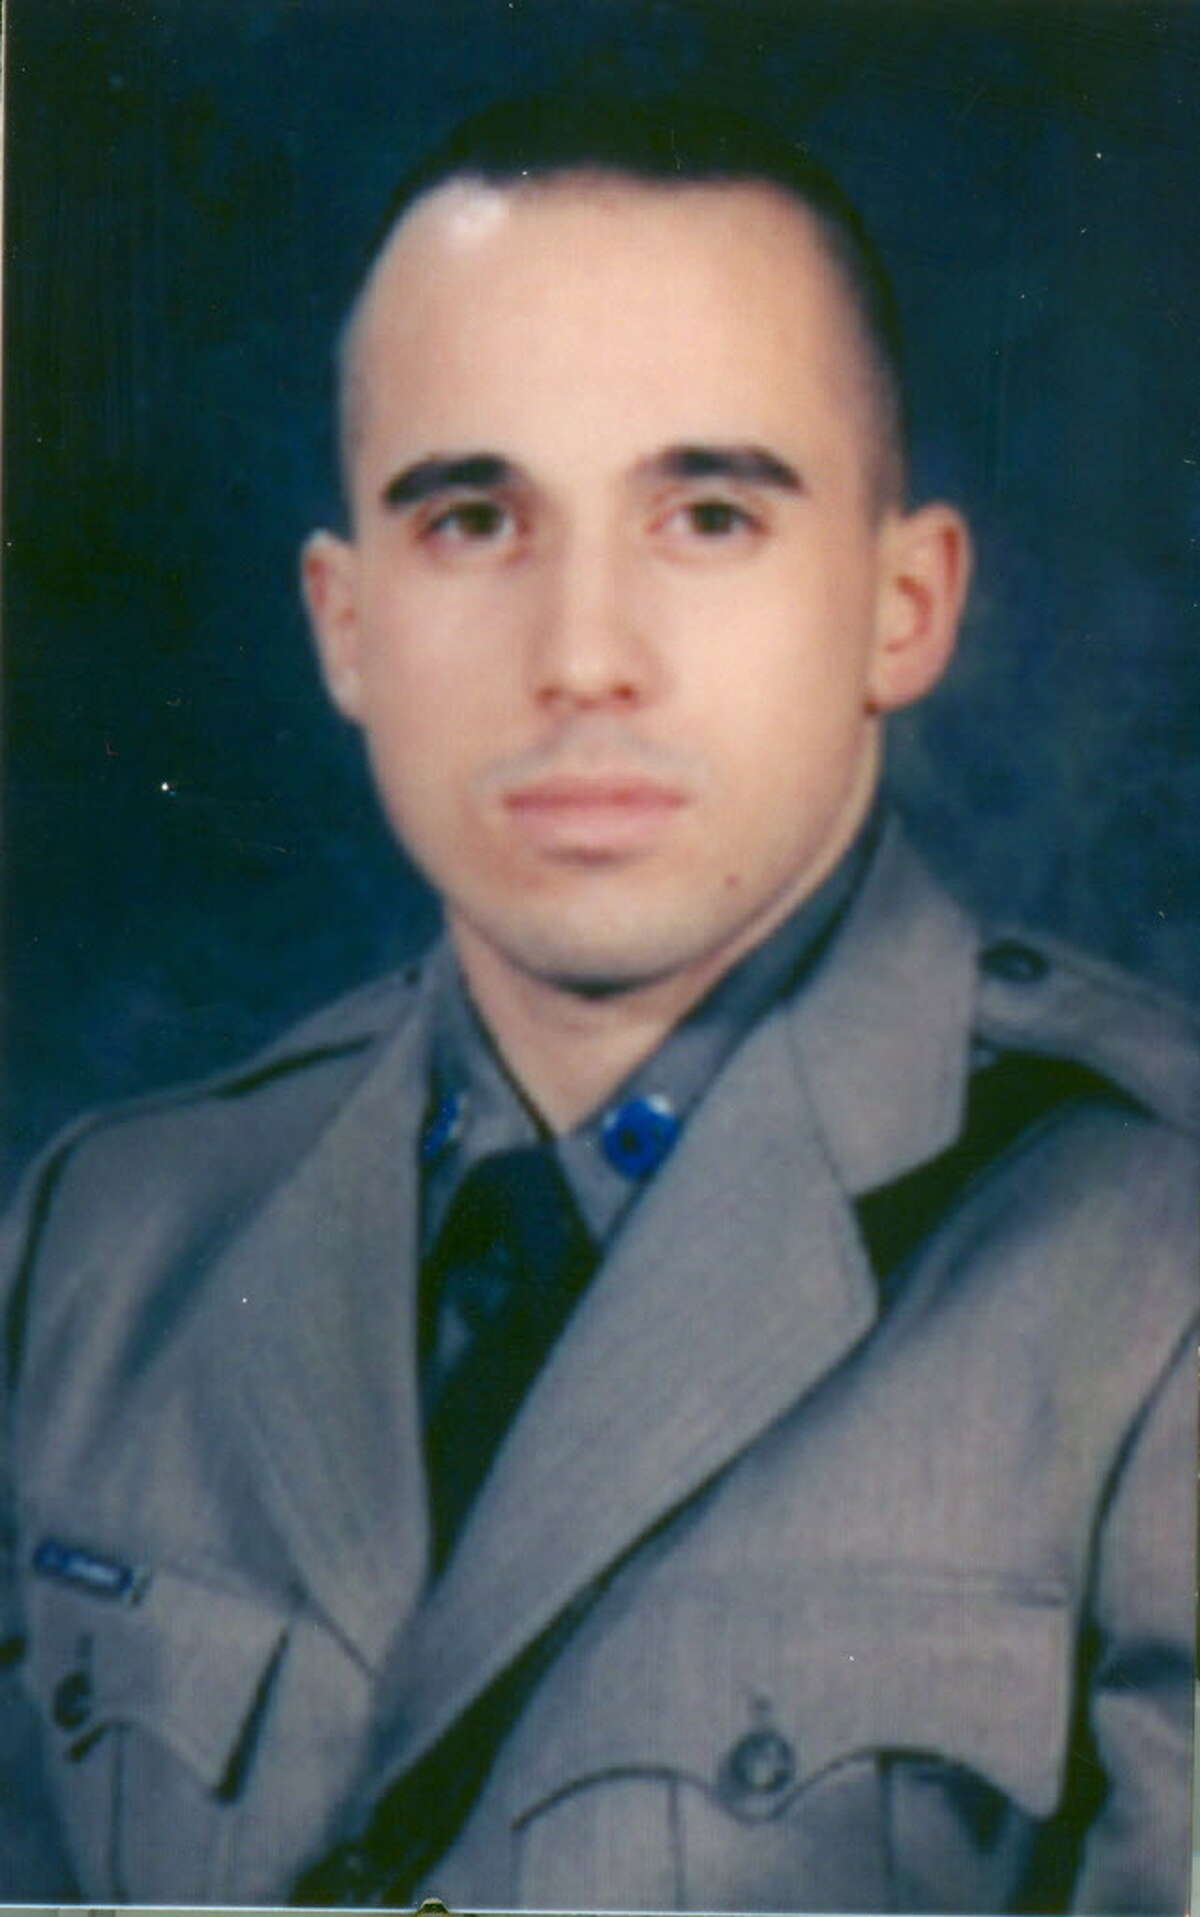 Trooper Joseph Longobardo, who was assigned to the Troop G Loudonville barracks, was killed by Ralph